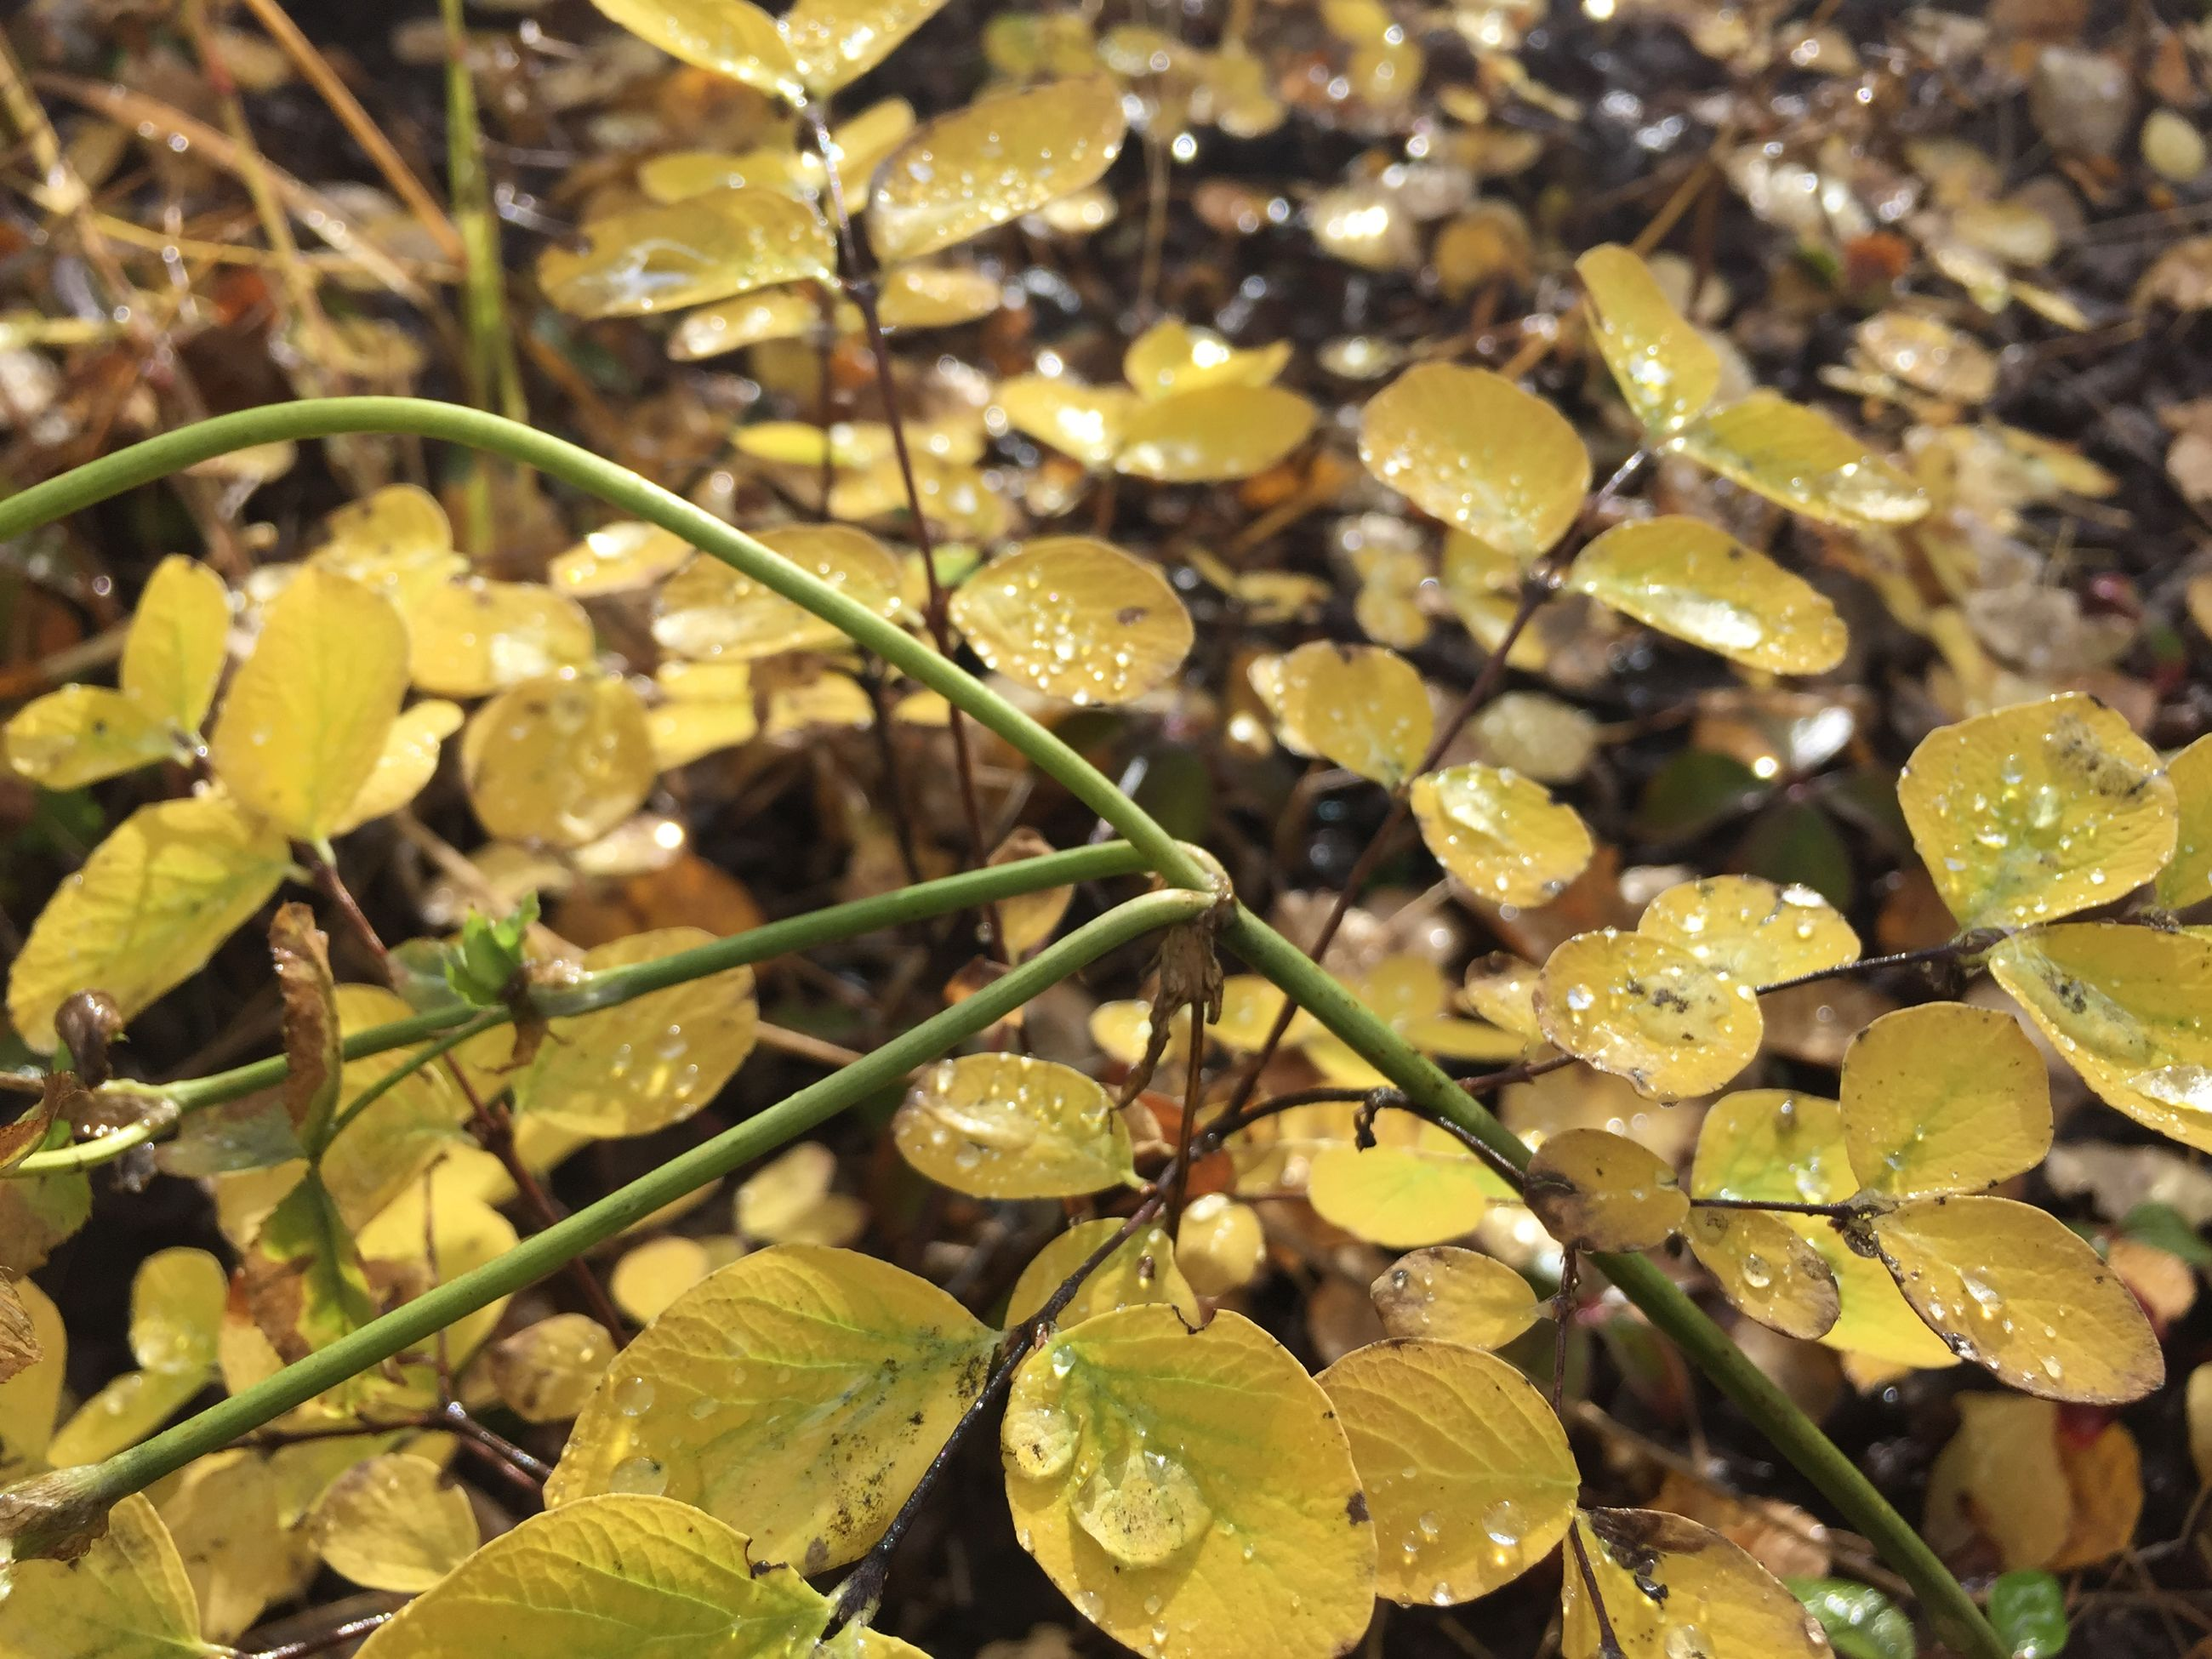 leaf, growth, nature, water, close-up, plant, leaves, beauty in nature, wet, high angle view, green color, tranquility, fragility, season, focus on foreground, day, outdoors, drop, no people, autumn